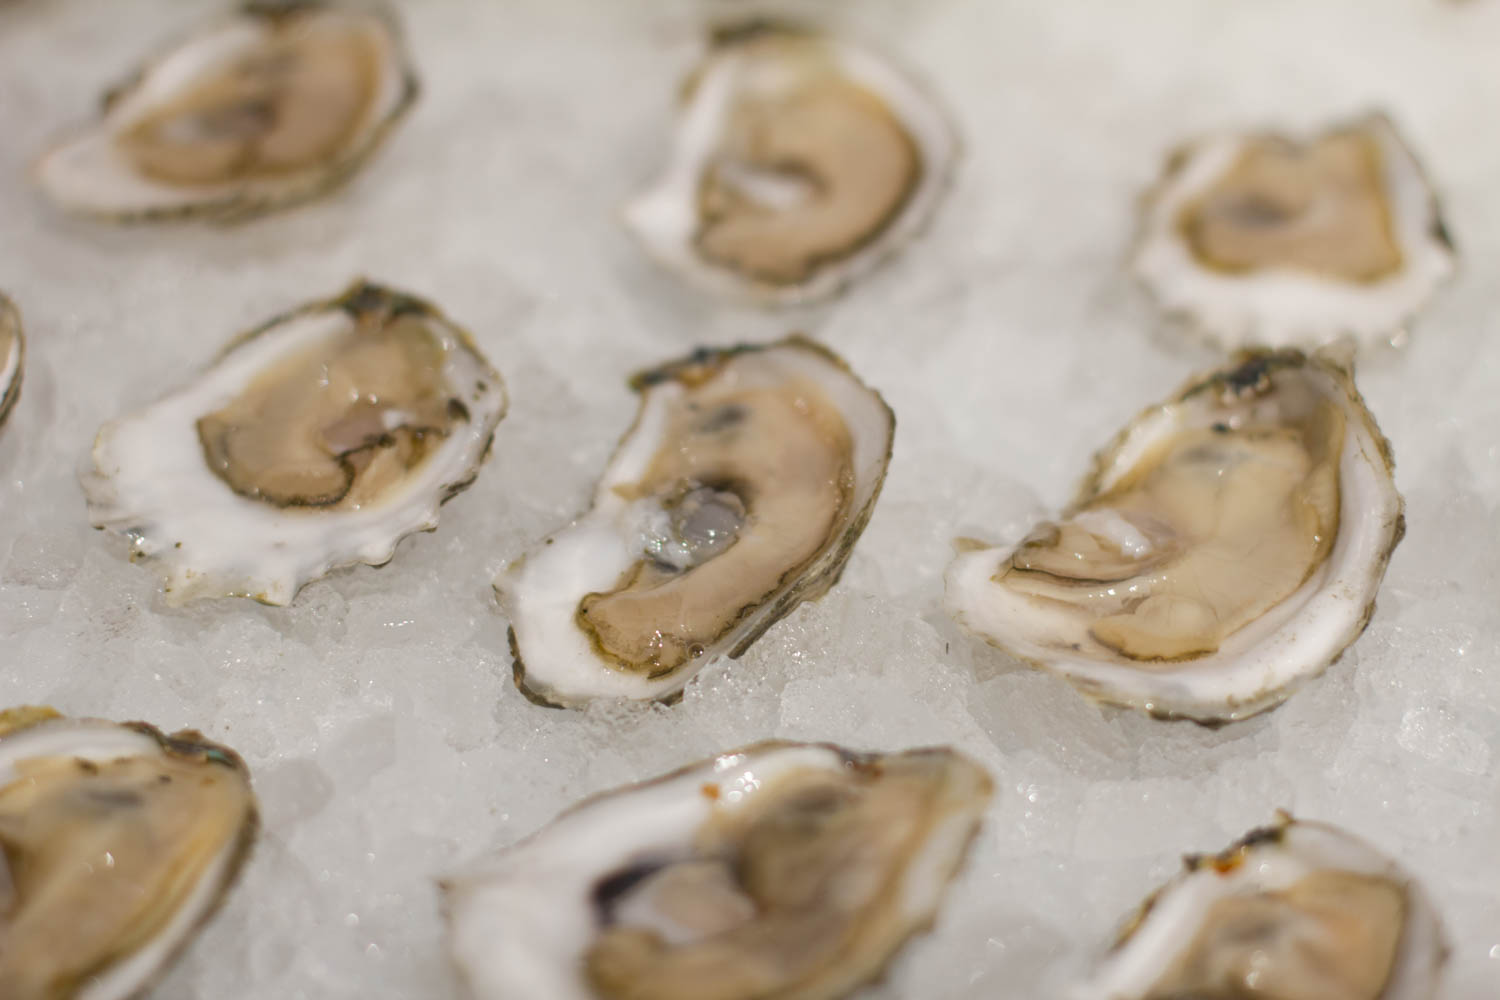 Oysters at Eataly's seafood counter.